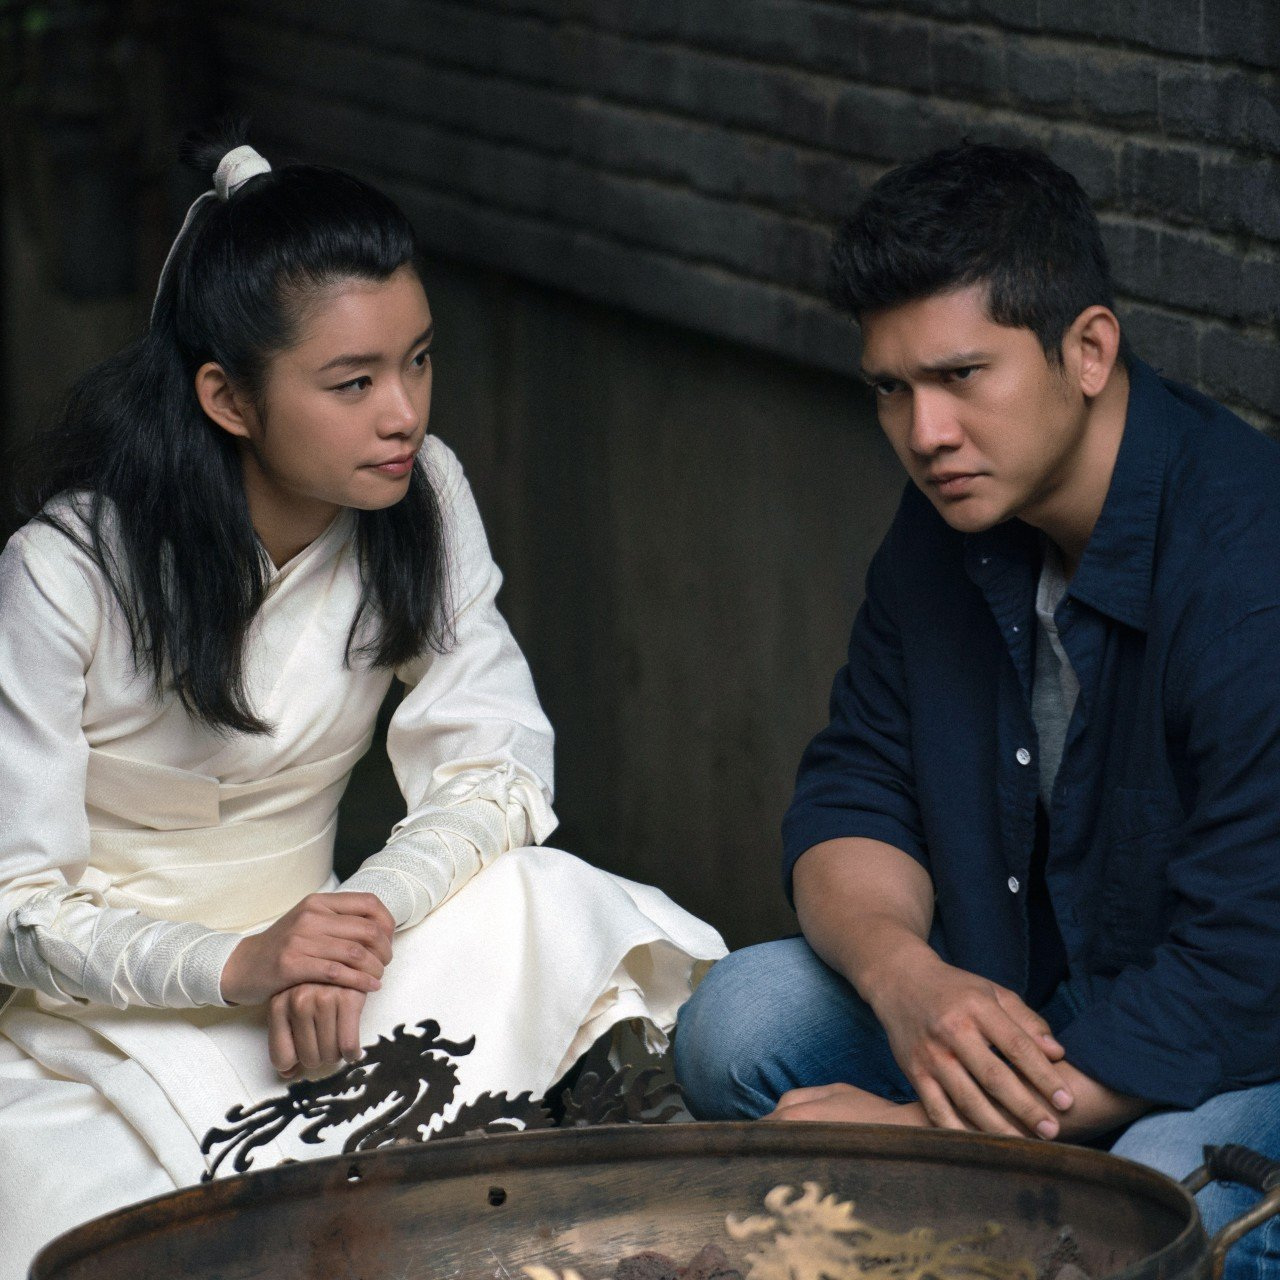 In Well-Intended Love, Netflix delivers an enjoyably cheesy Chinese